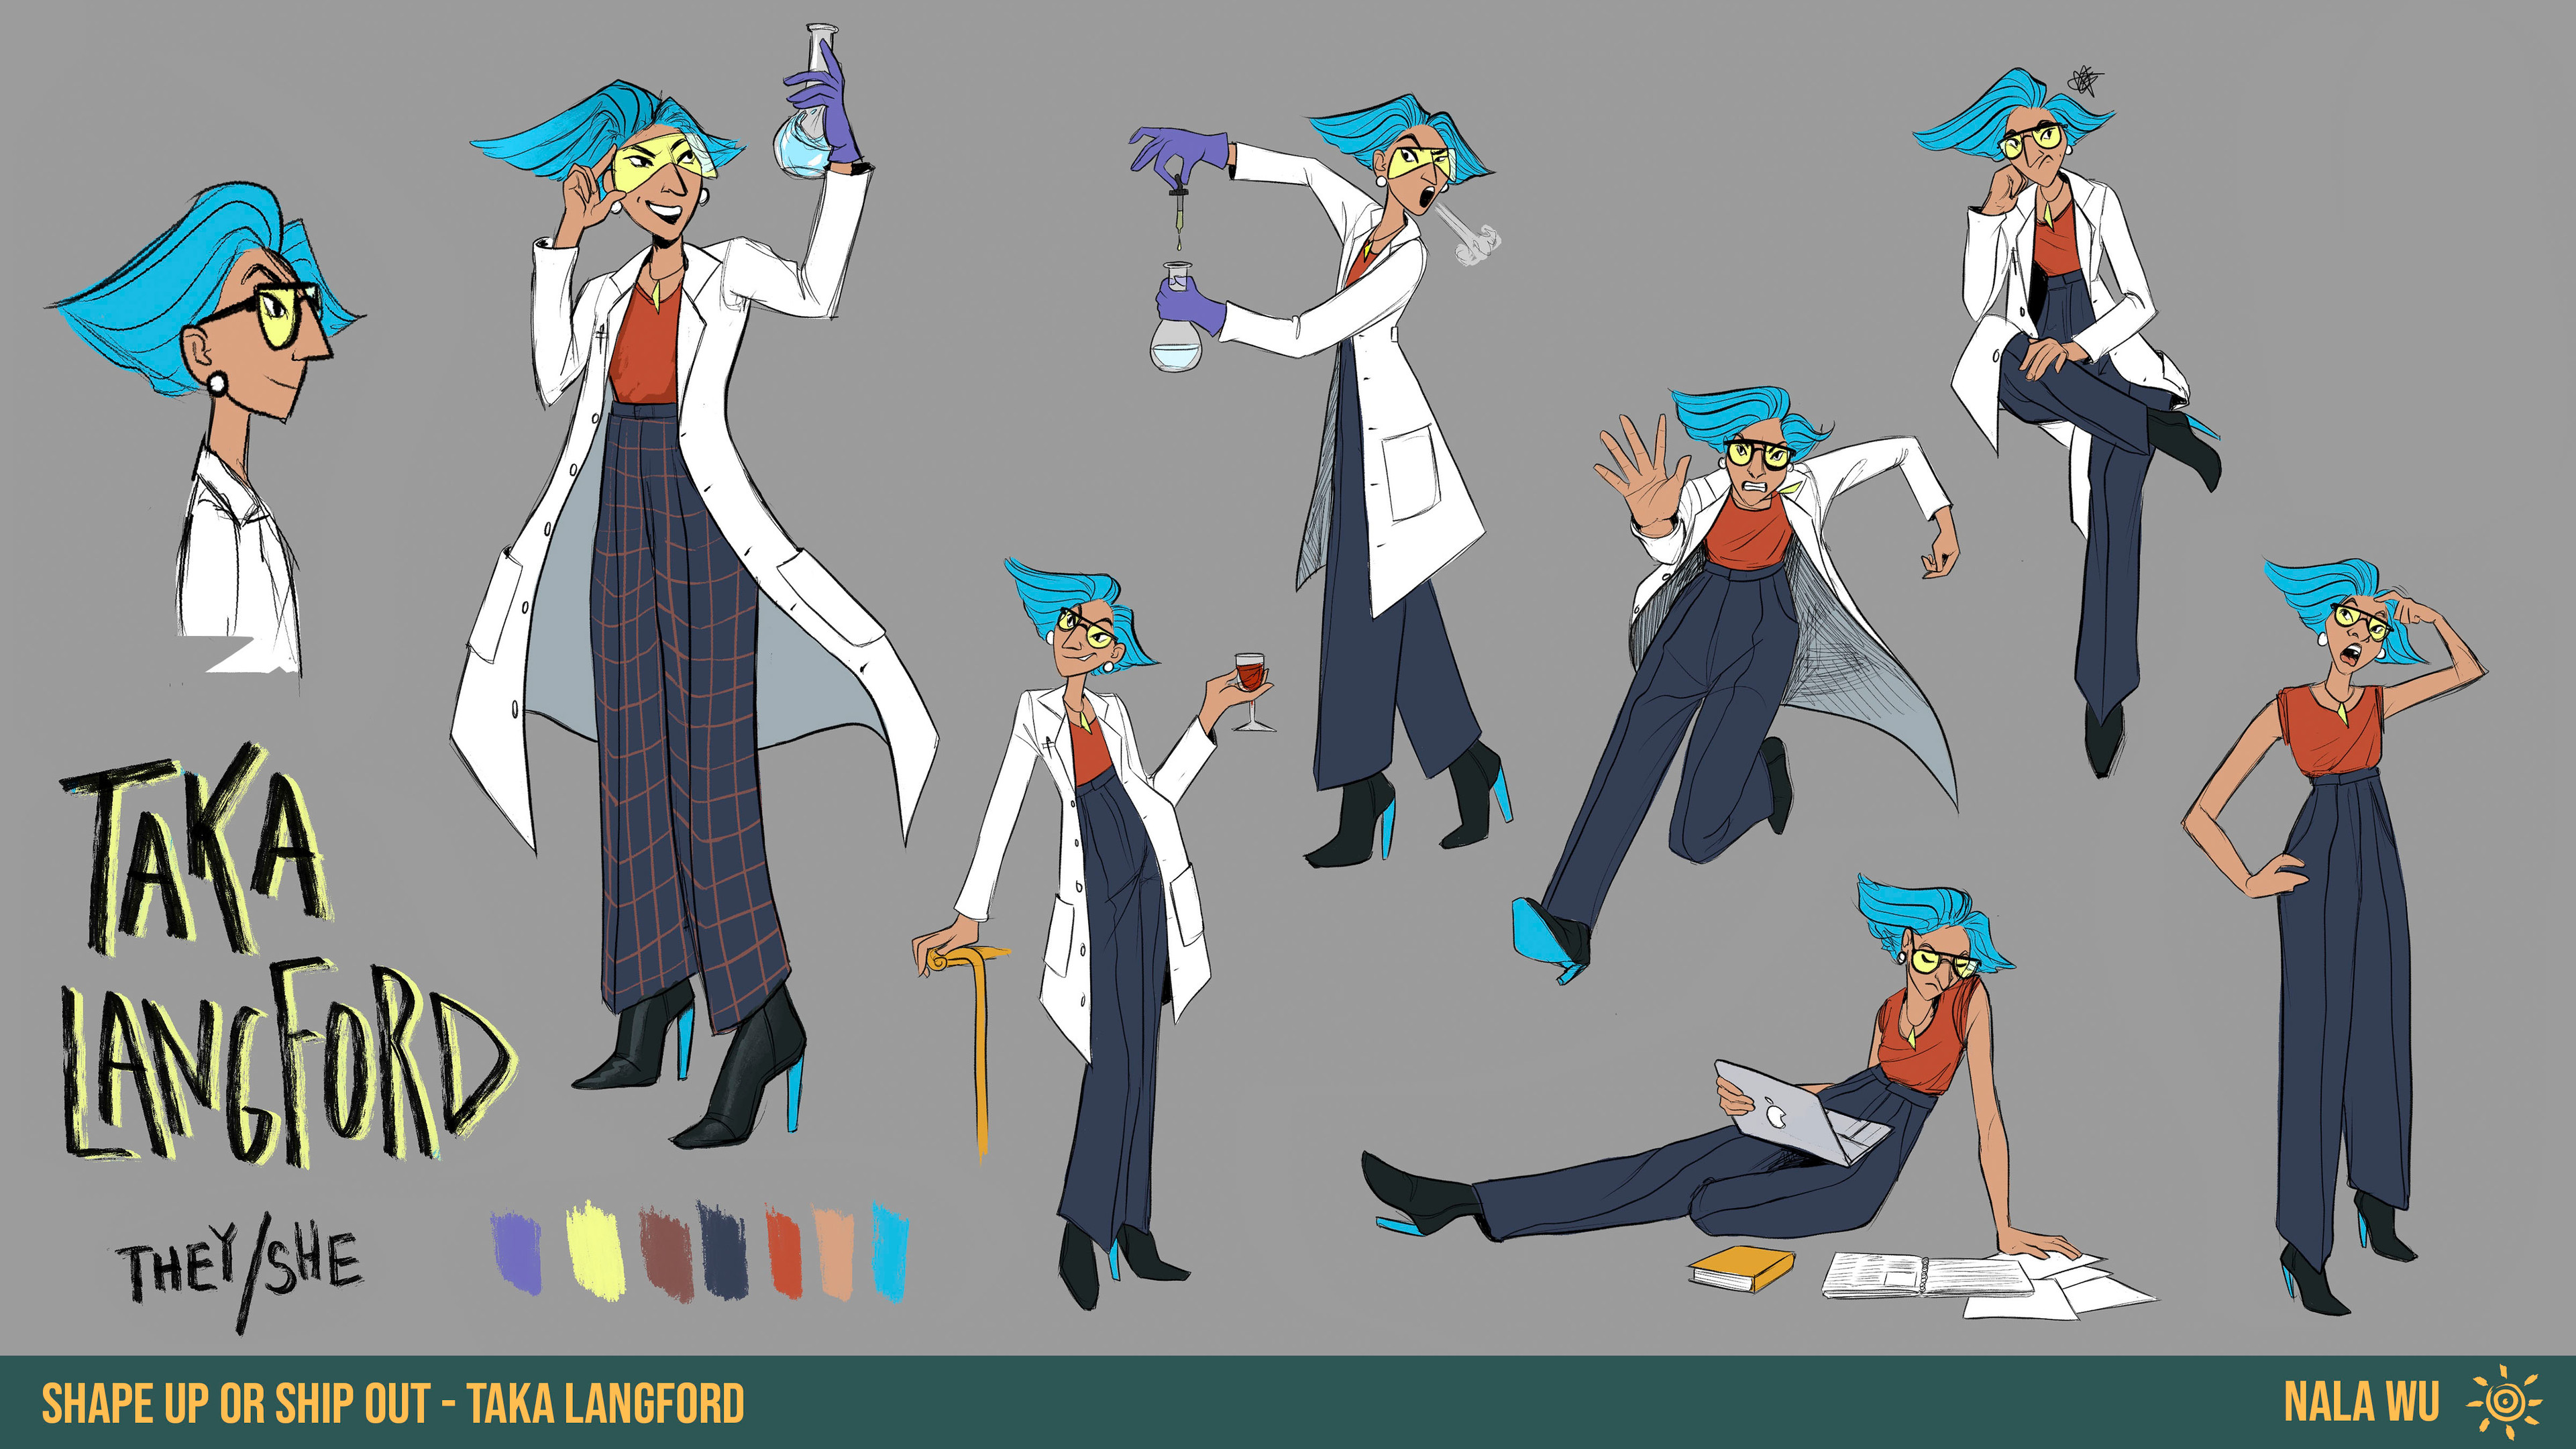 Dr. Taka Langford is a NBi Japanese Scientist who runs their own lab. They are absolutely dedicated to their career, and her priority is pursuing answers to scientific mysteries— but she might be a little too swayed by large sums of money.